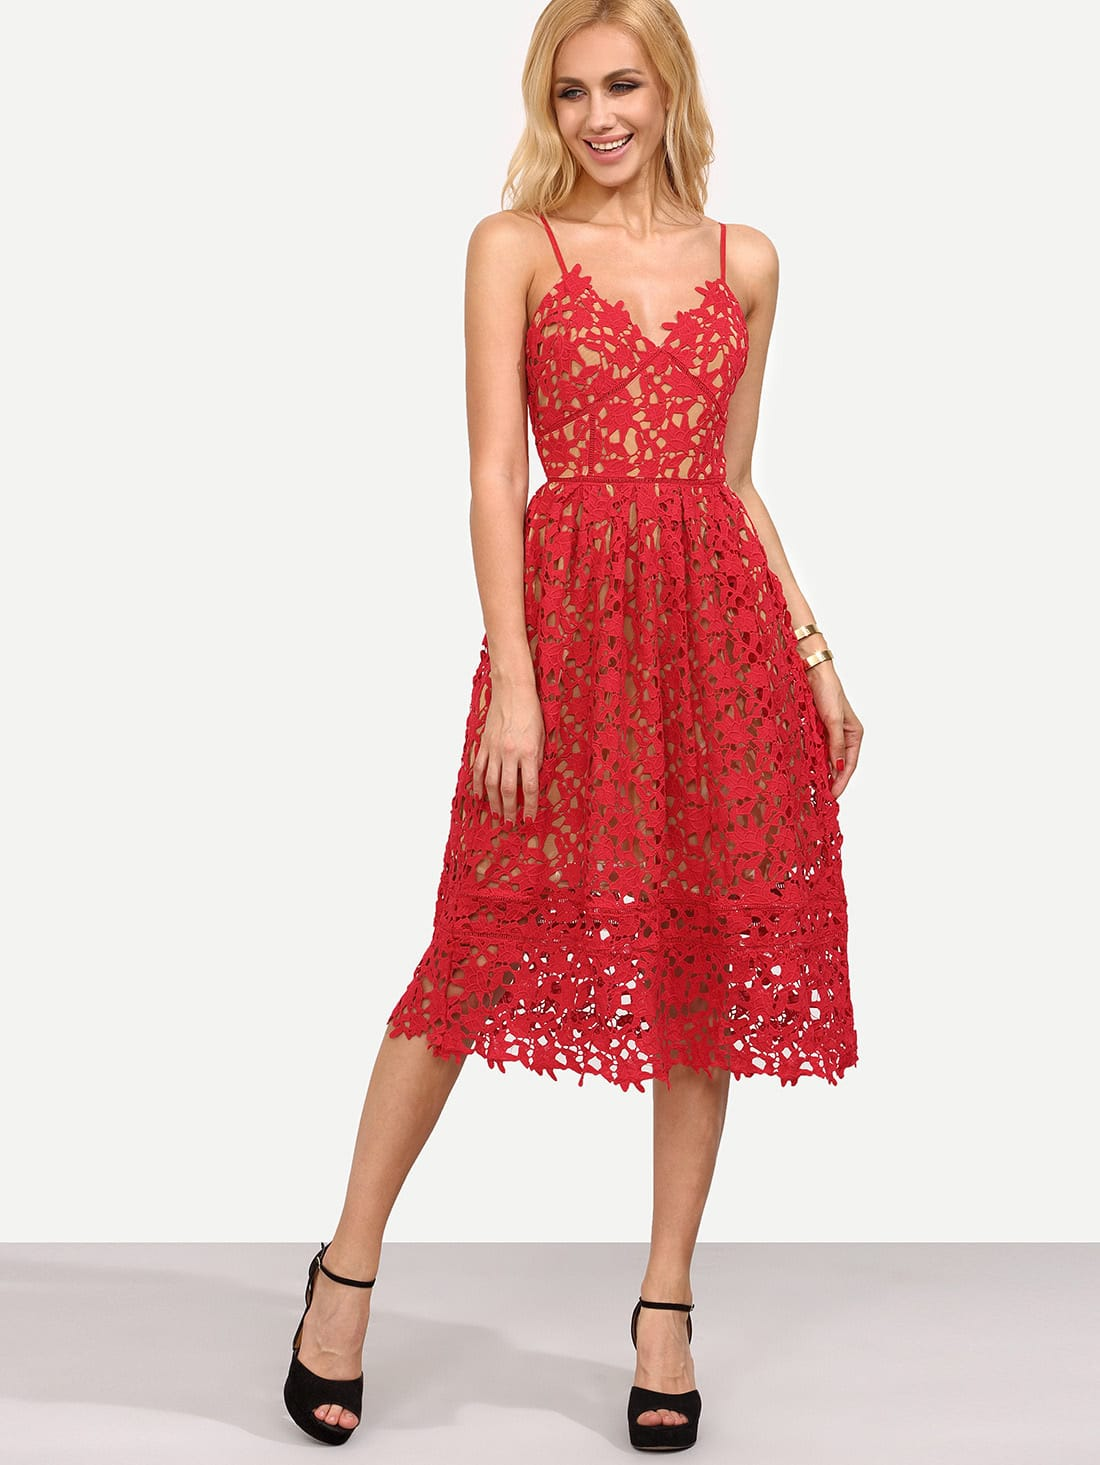 The Look For Less Self Portrait Sheer Lace Dresses